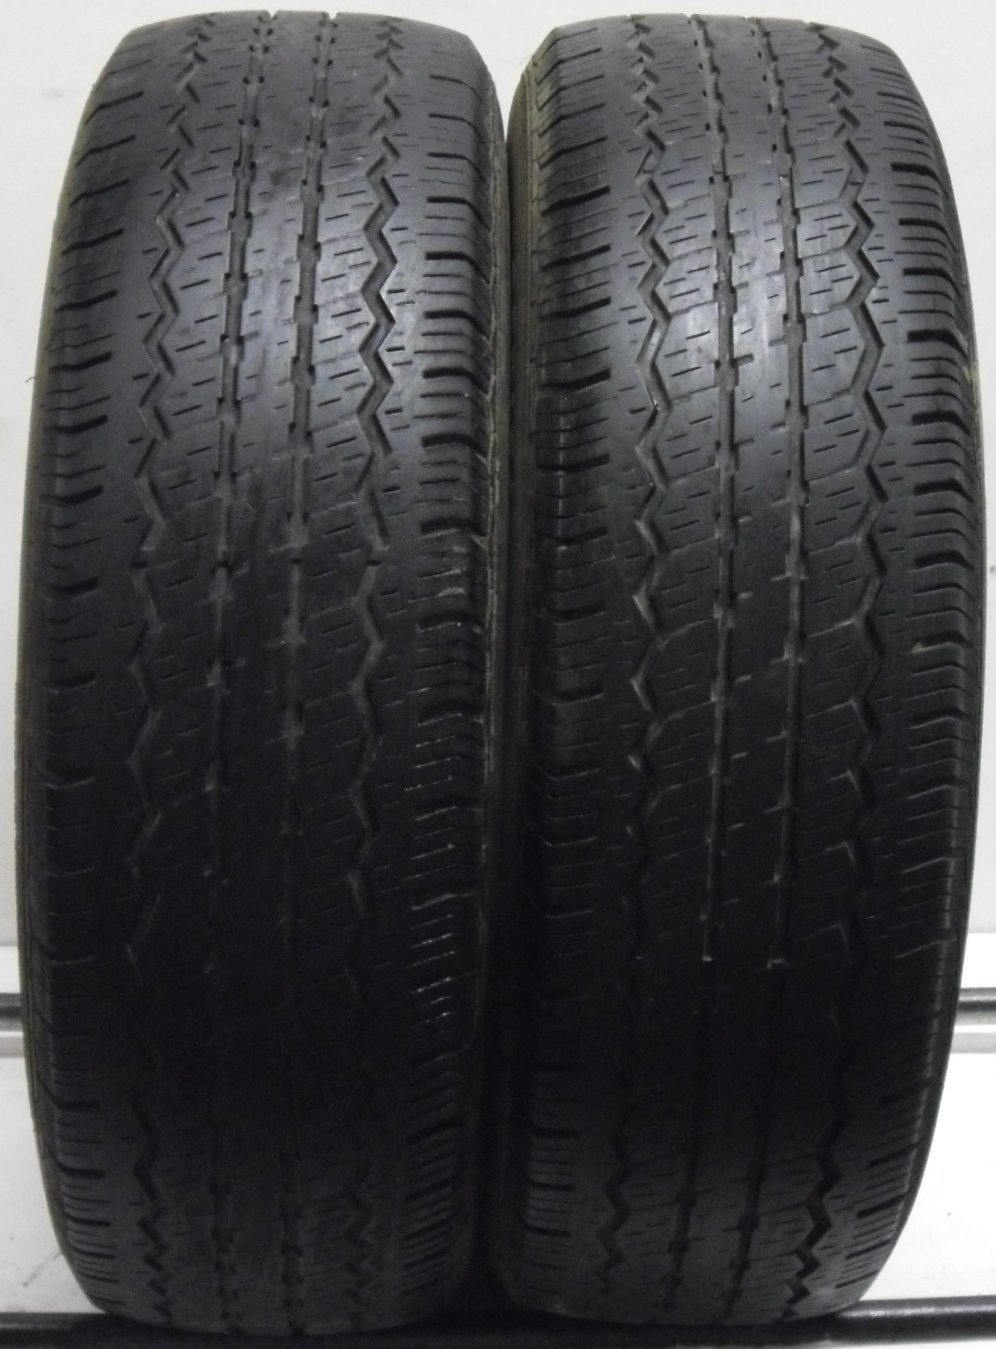 2 2257016 Hankook 225 70 16 Part Worn Car Tyres RA07 x2 Two 3mm to 4mm